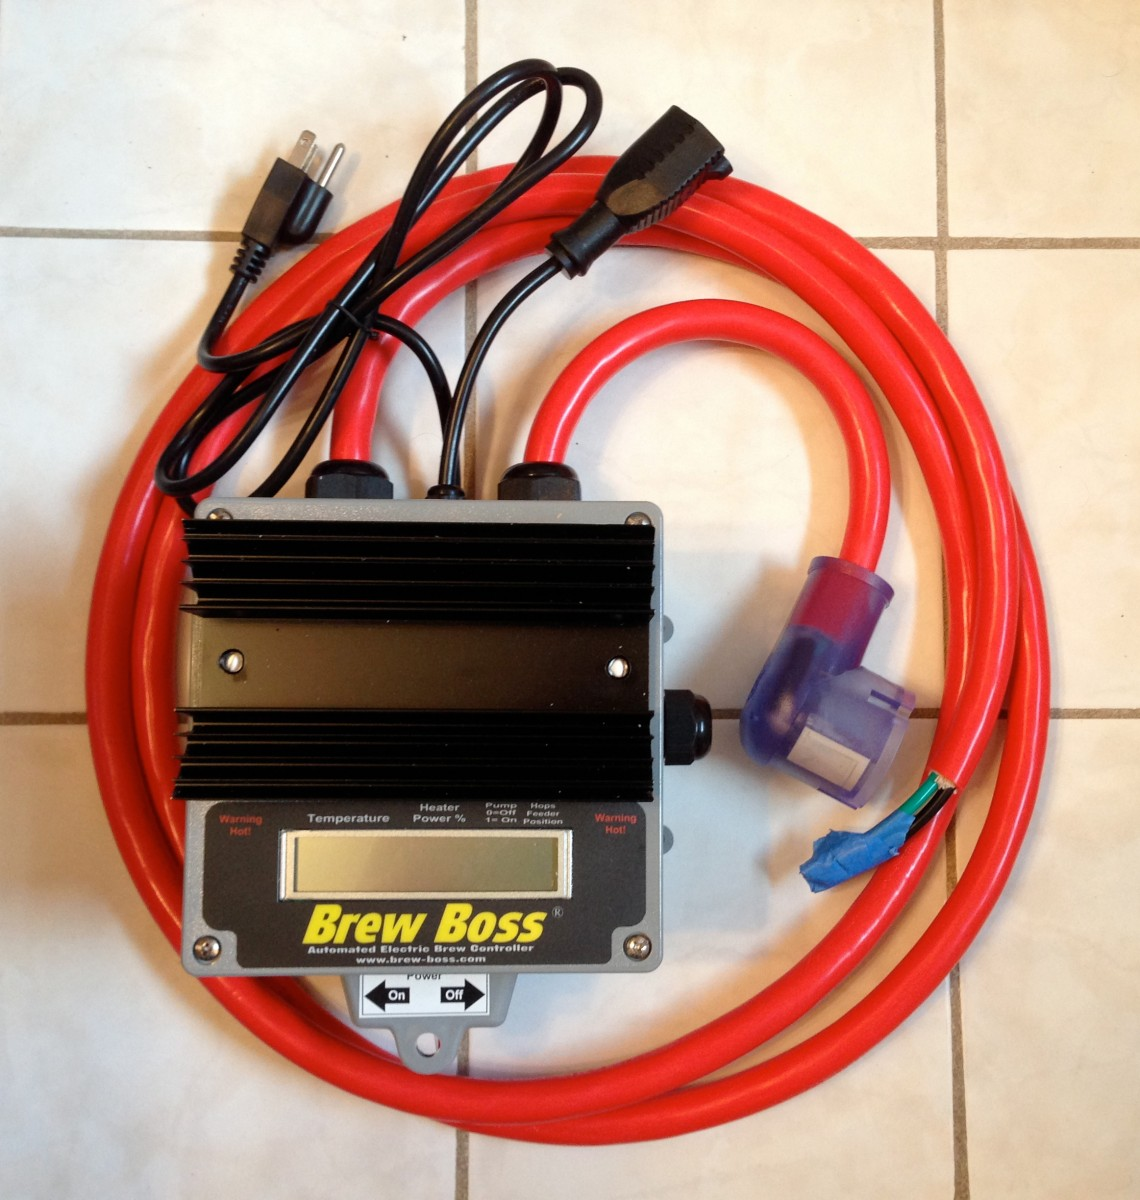 hight resolution of 240v brew boss controller with separate 120v pump power cords